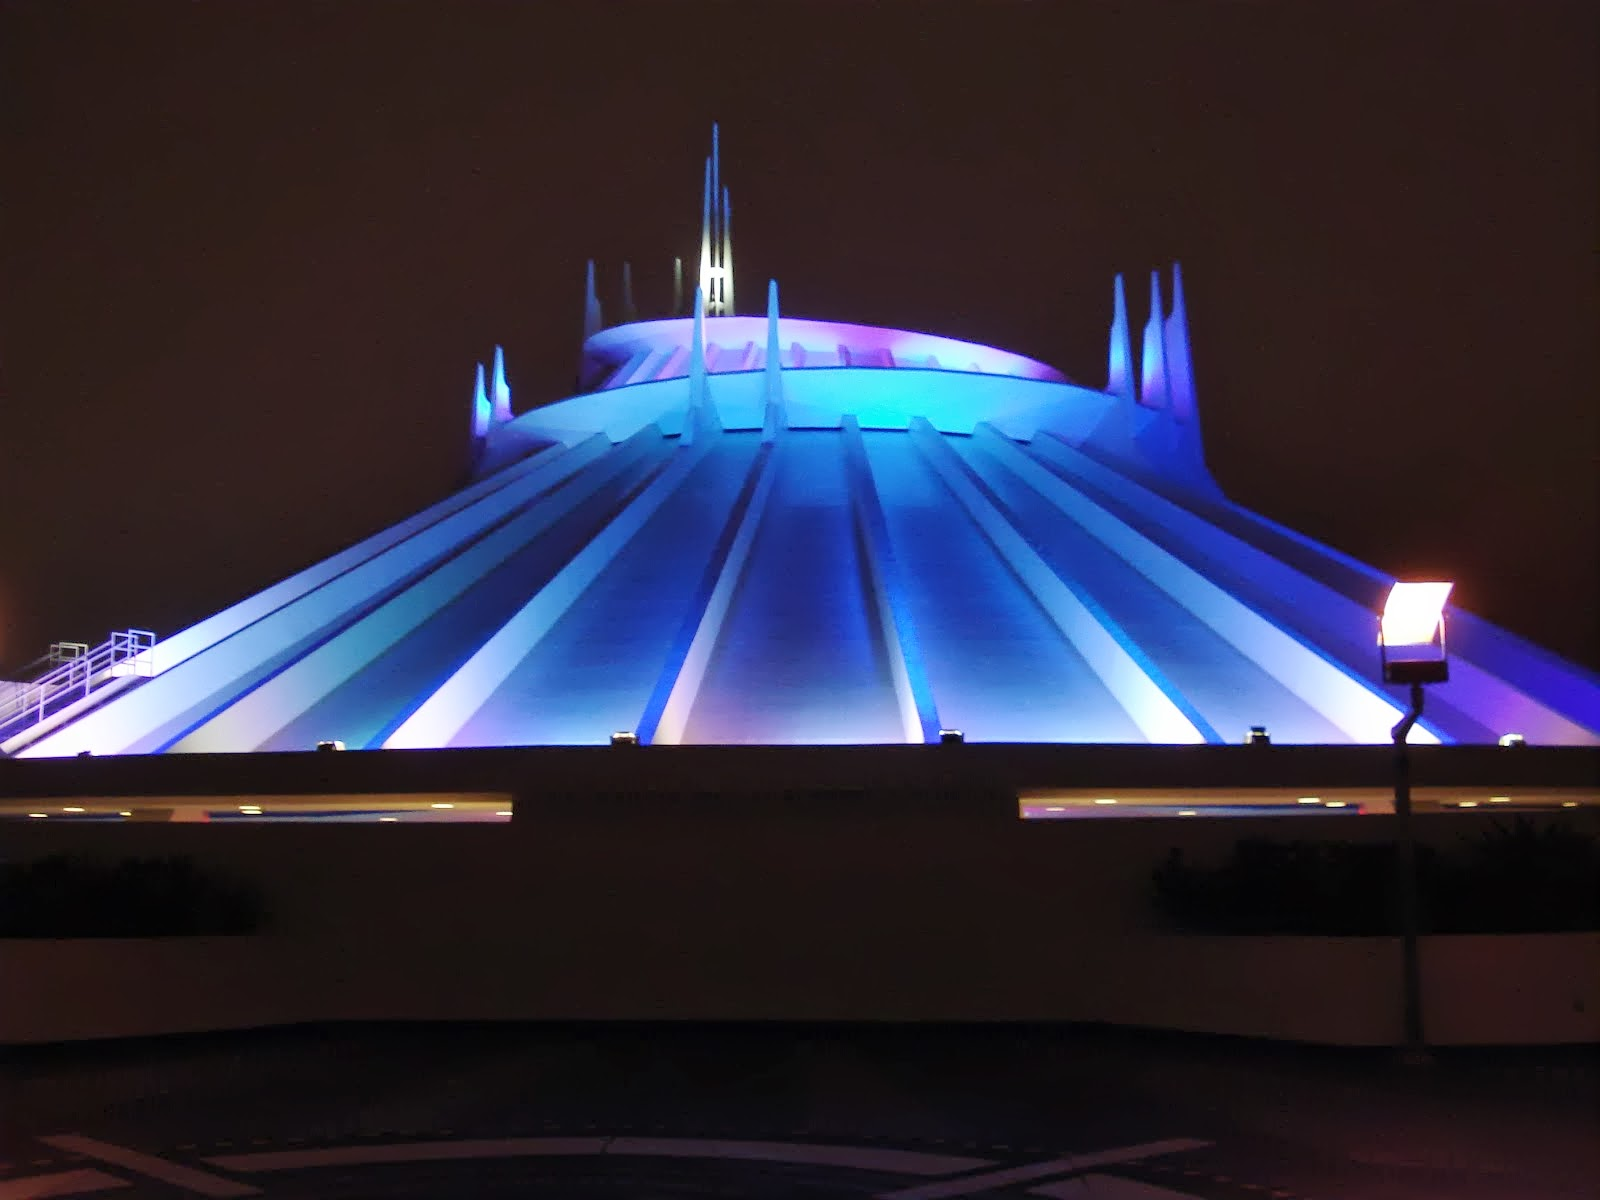 Hd Earth Wallpaper Widescreen Space Mountain Pictures Space Wallpaper